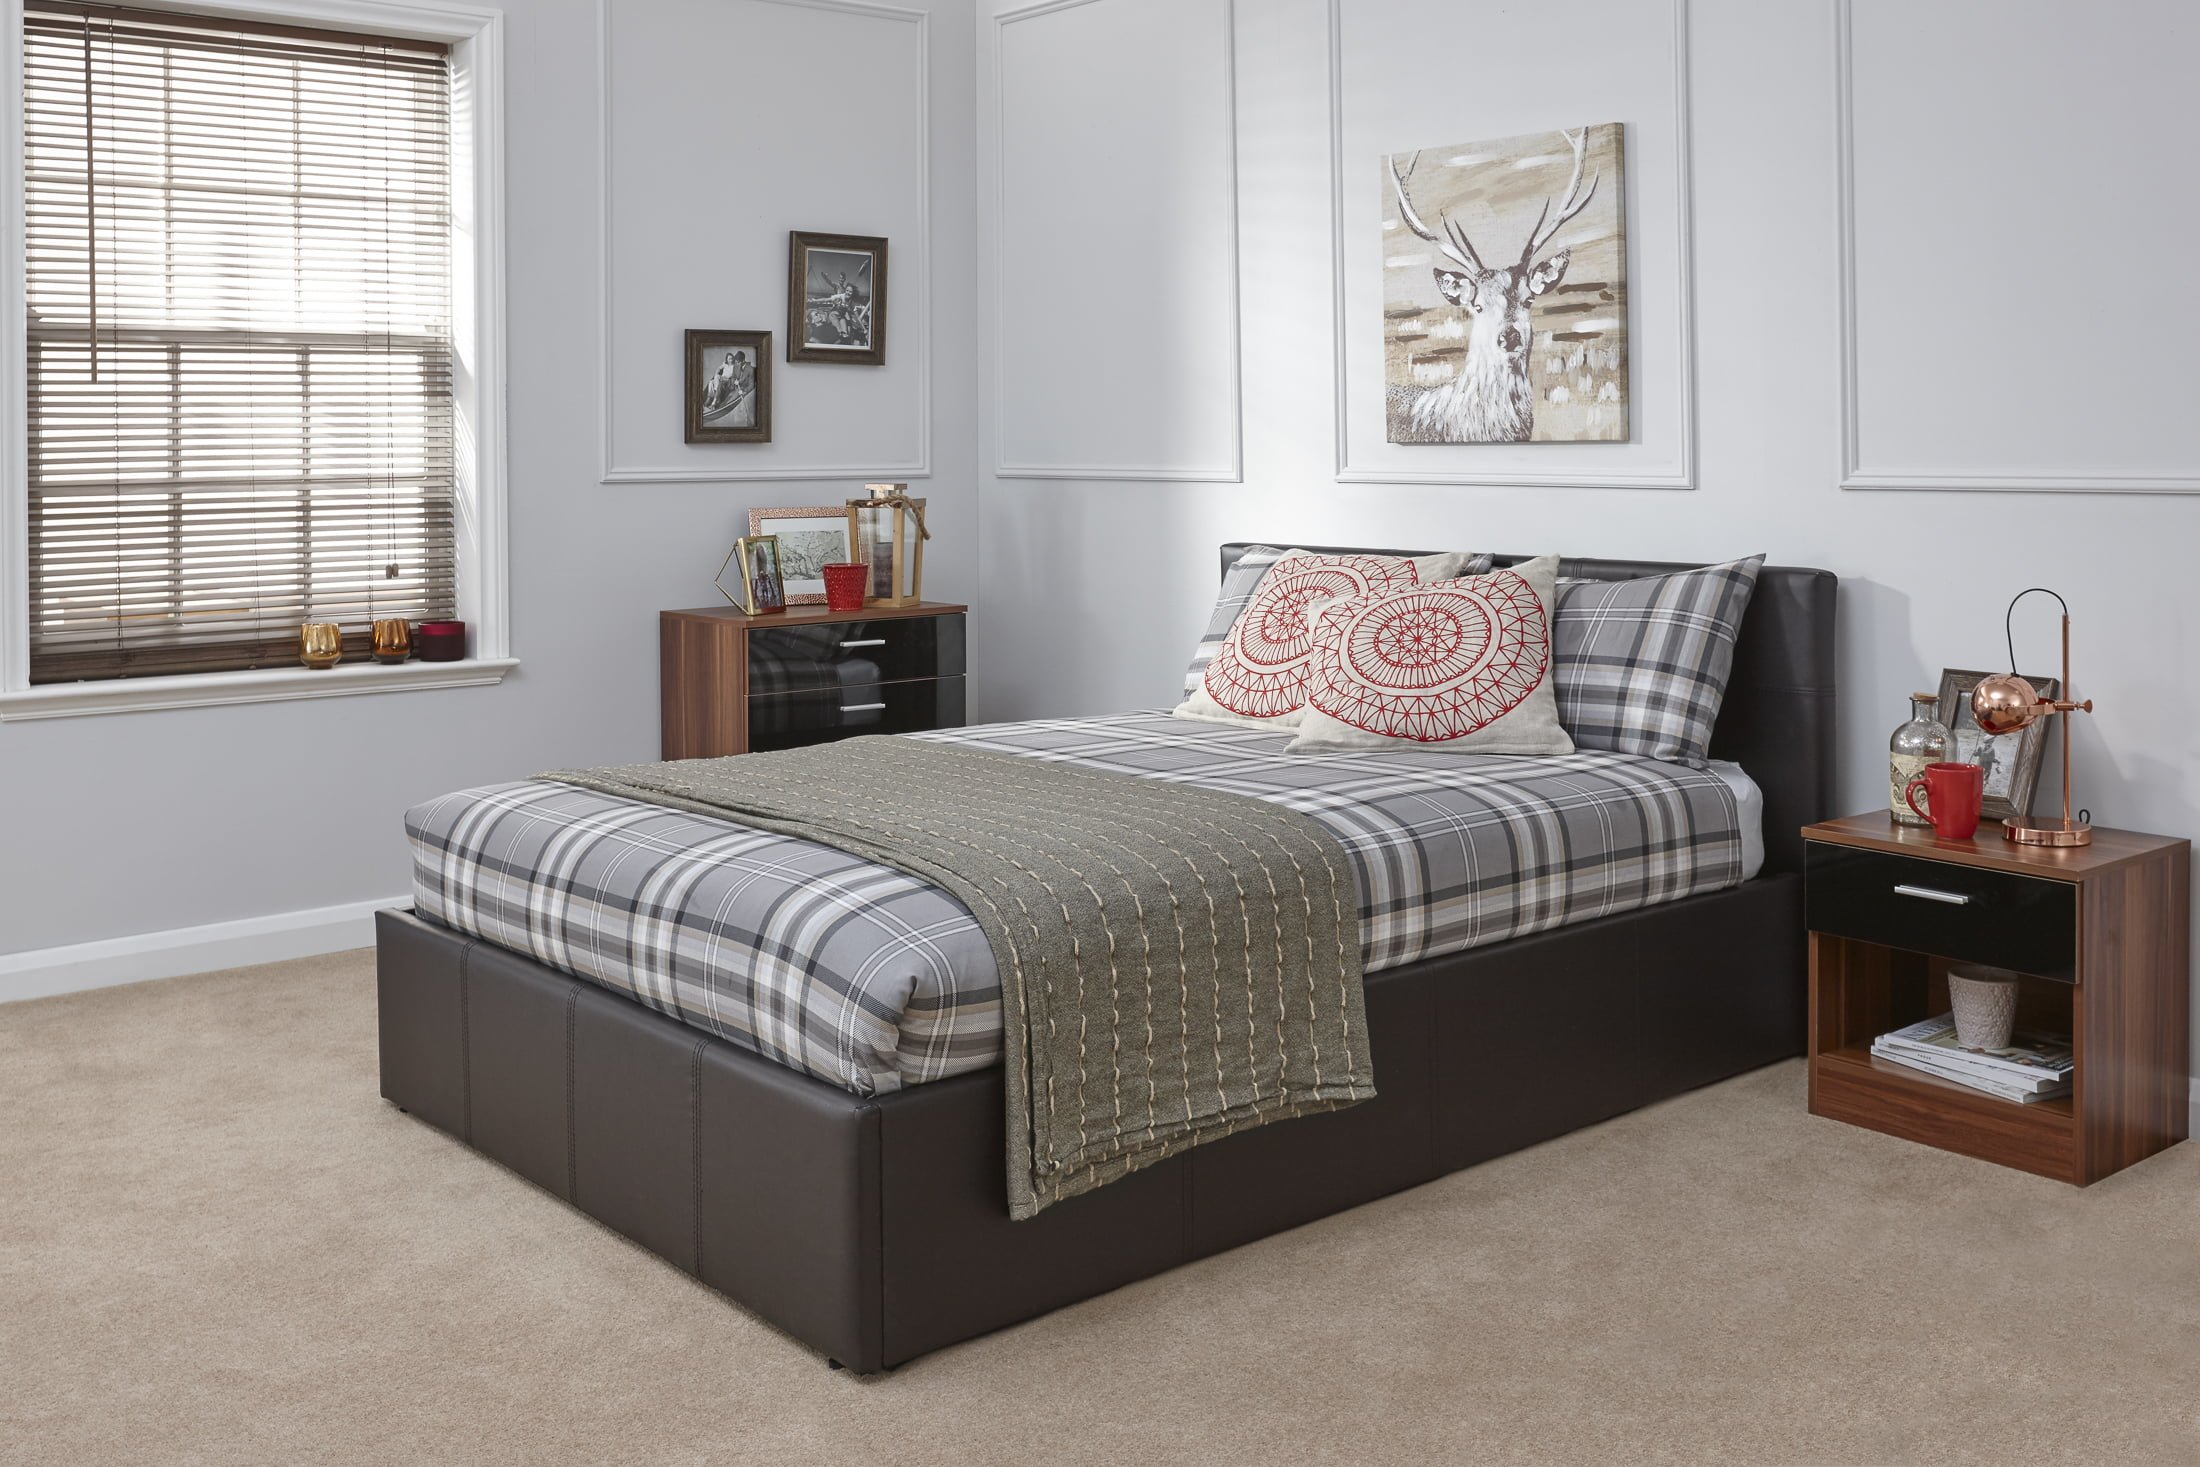 Small Double Arizona Brown Ottoman Bed Frame - Dublin Beds